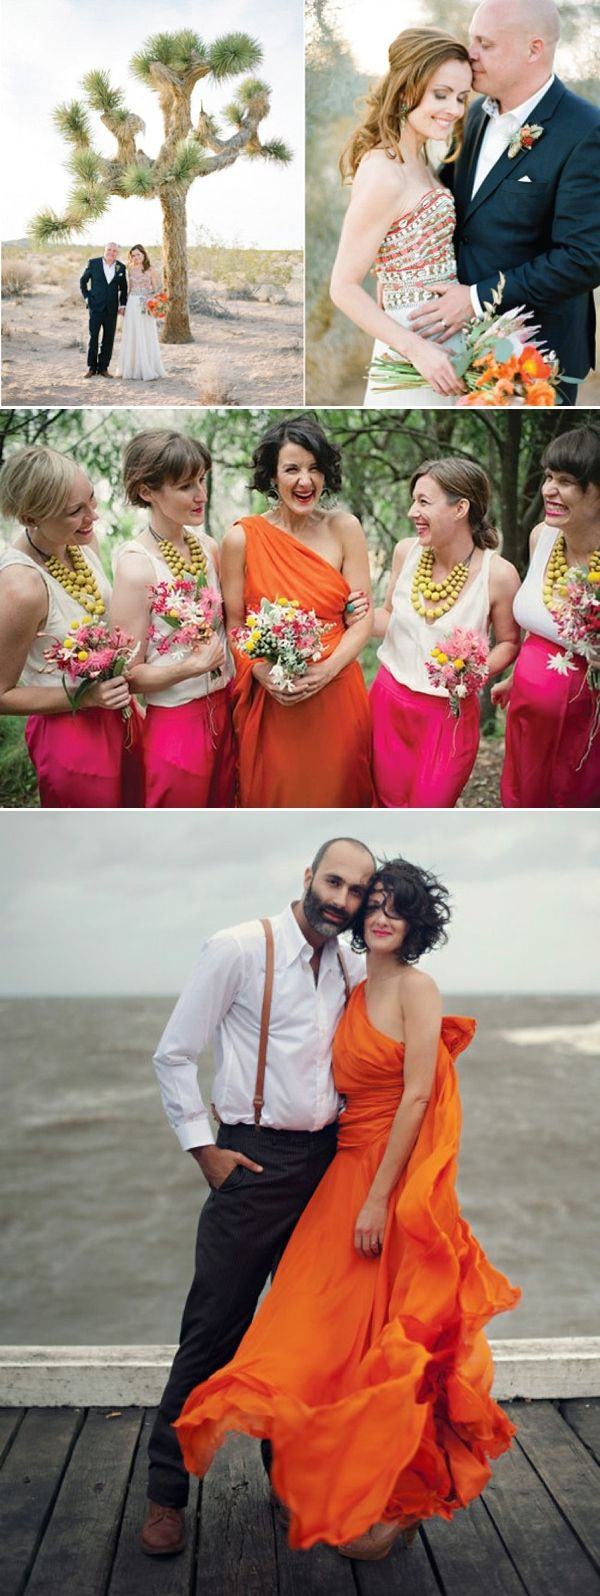 Coloured Wedding Dresses ~ Inspiration For the Bride Who Doesn't Want To Wear White - Accents for the Orange dress shown on your Maidens